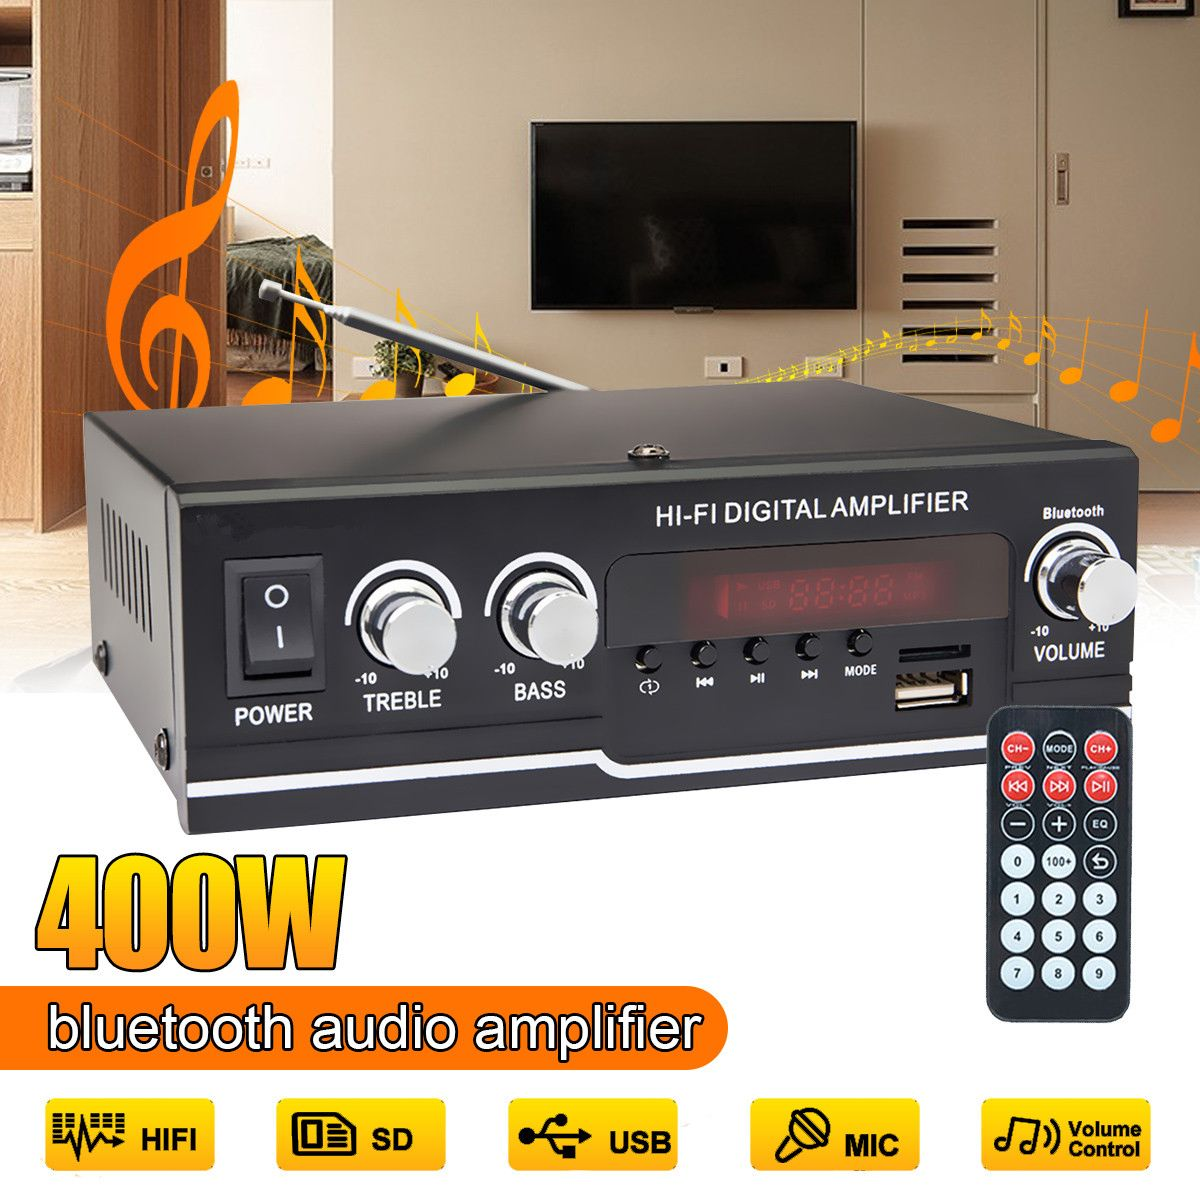 220V 400W Audio Power Amplifier 2 CH Home Theater Bluetooth Amplifiers HIFI Sound System Subwoofer Support FM USB SD Card